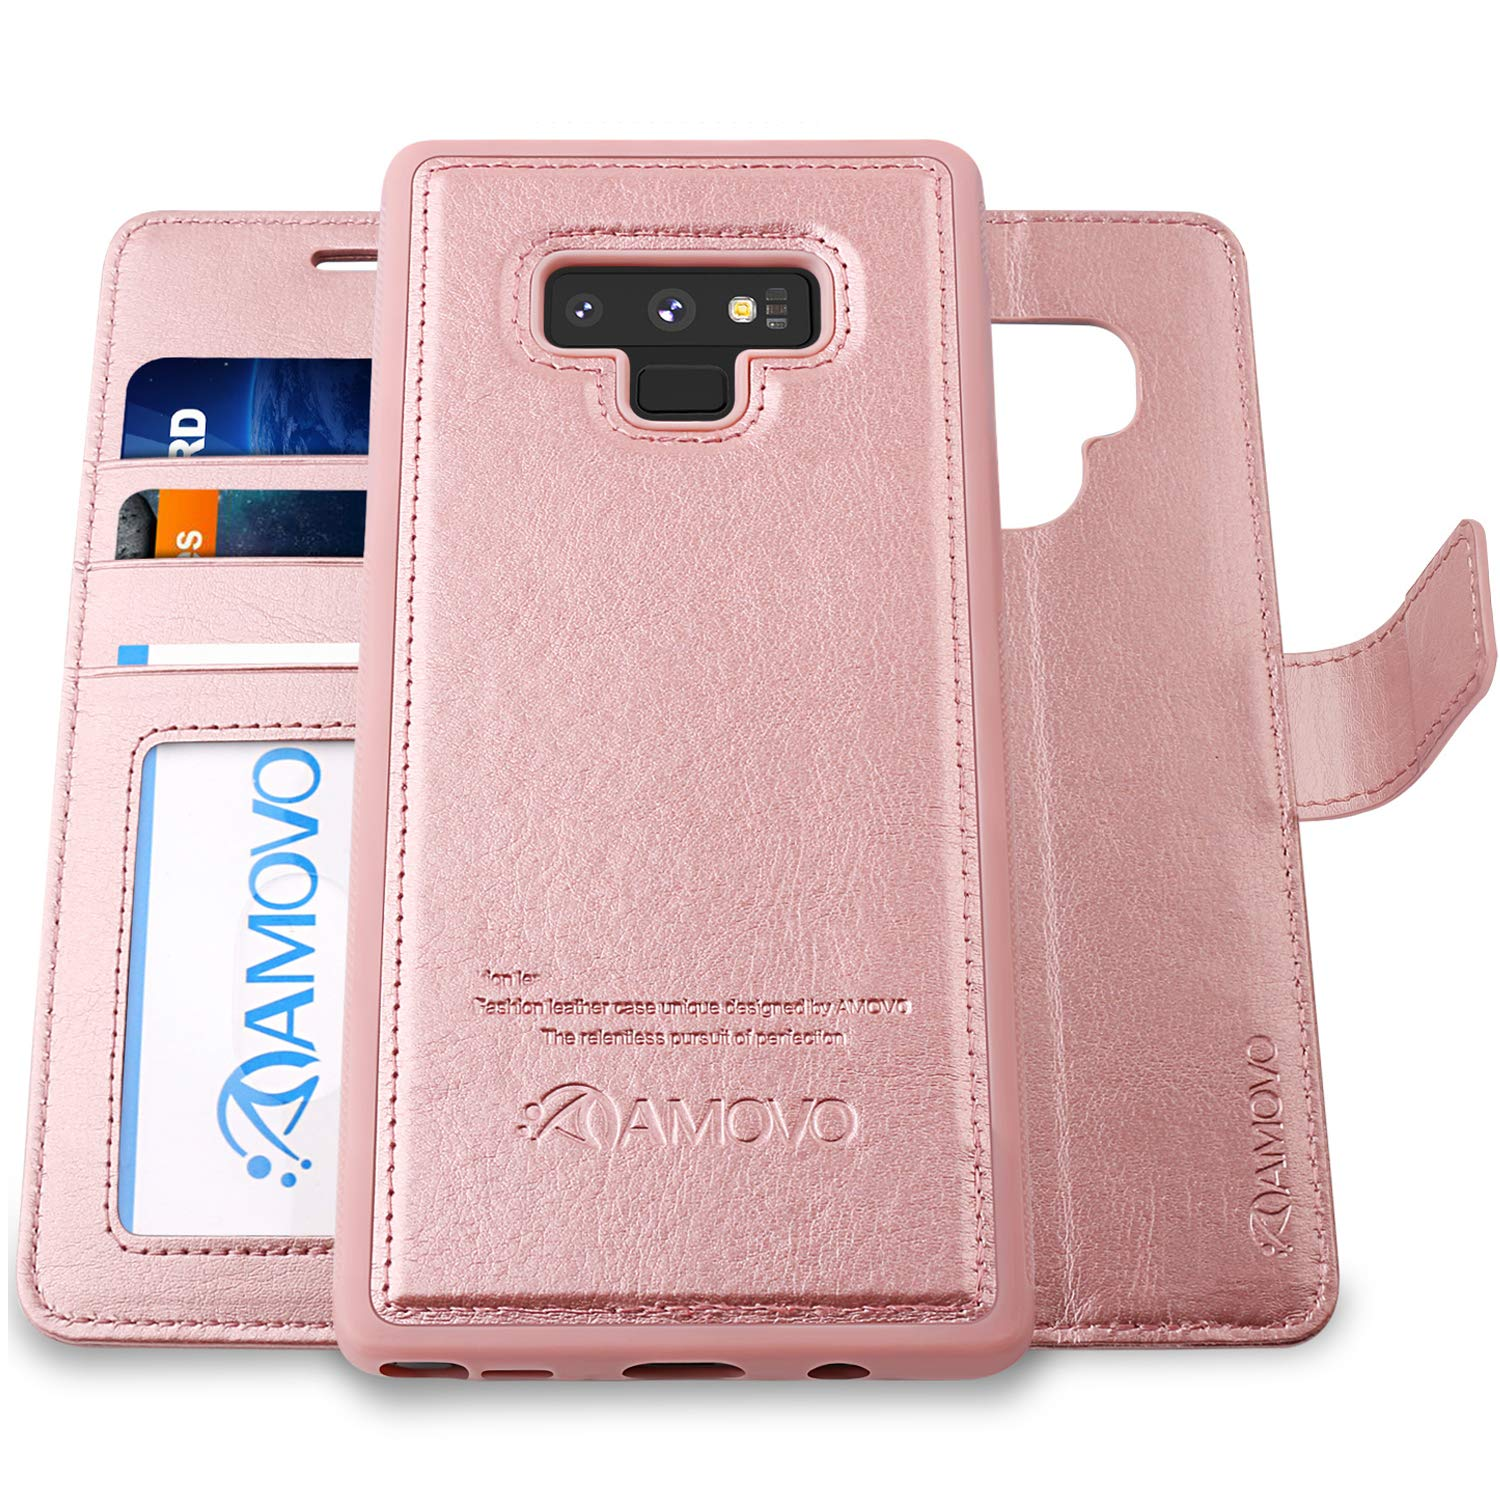 AMOVO Case for Galaxy Note 9 [2 in 1] Samsung Galaxy Note 9 Wallet Case [Detachable] [Wrist Strap] [Card Slot] [Kickstand] Note 9 Flip Case with Gift Box Package (Note 9, Rosegold) by Amovo